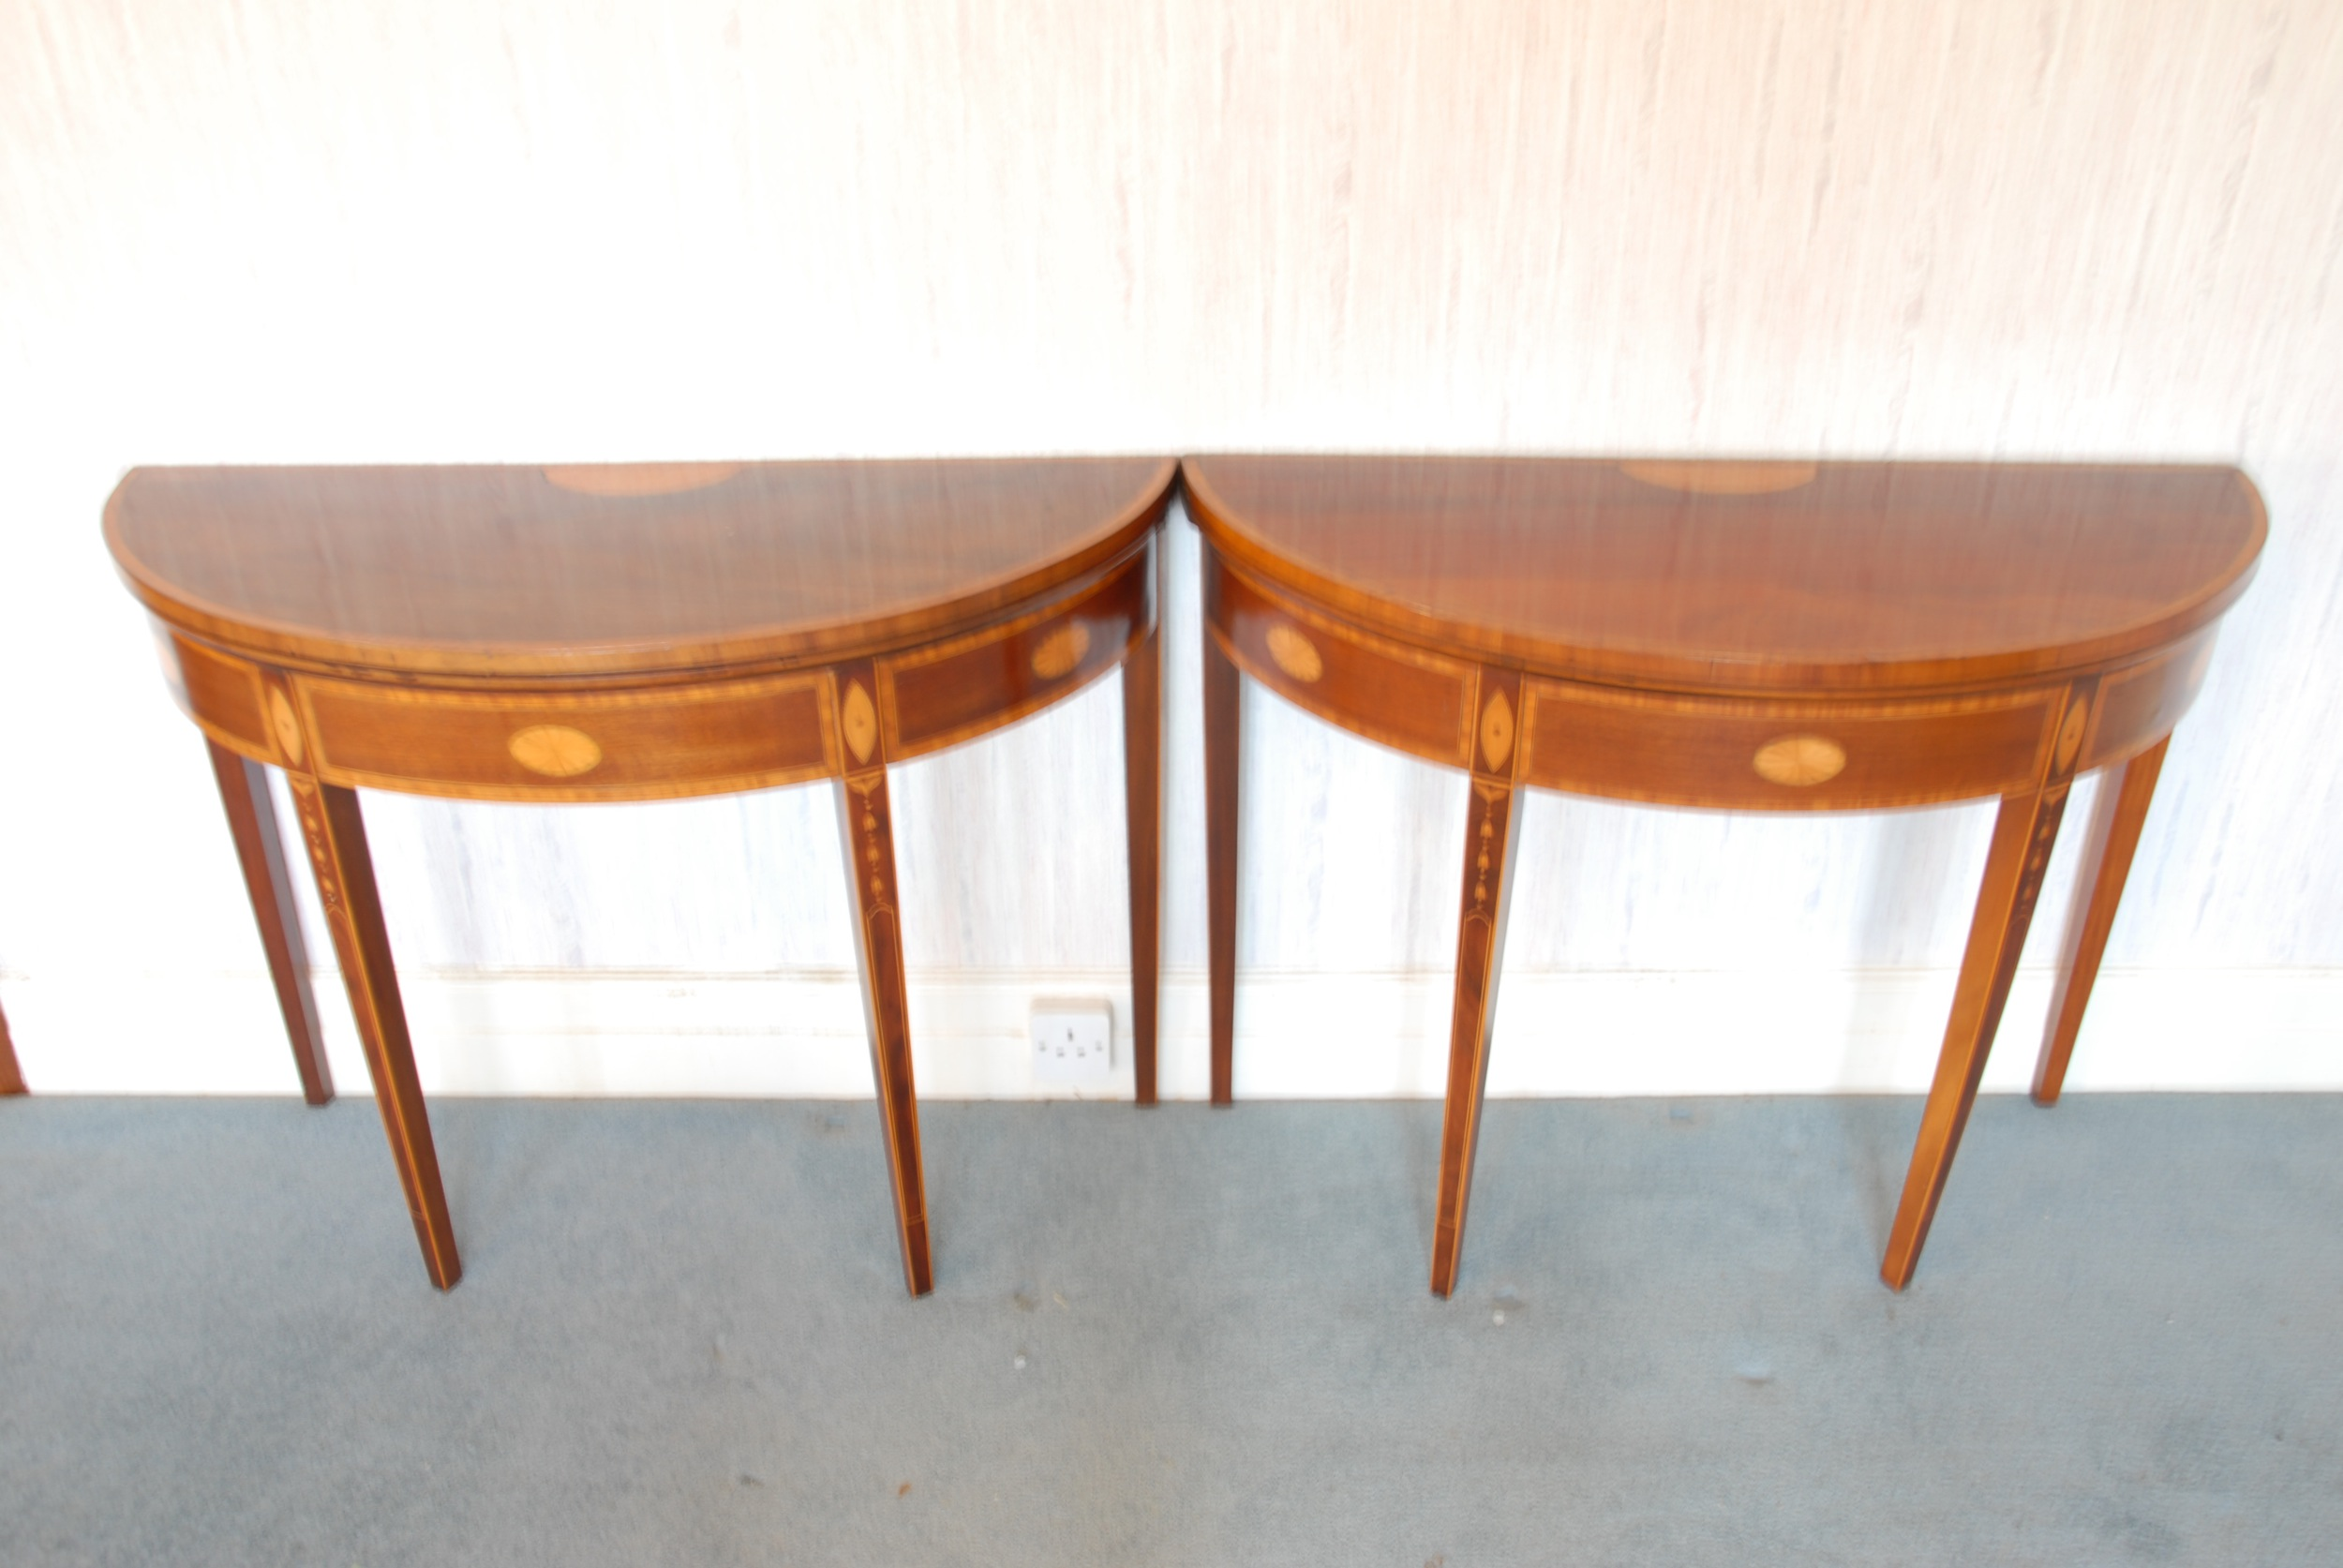 Antique card table regency card table inlaid card table antique - A Pair Of Inlaid Mahogany Demi Lune Card Tables 2 000 3 000